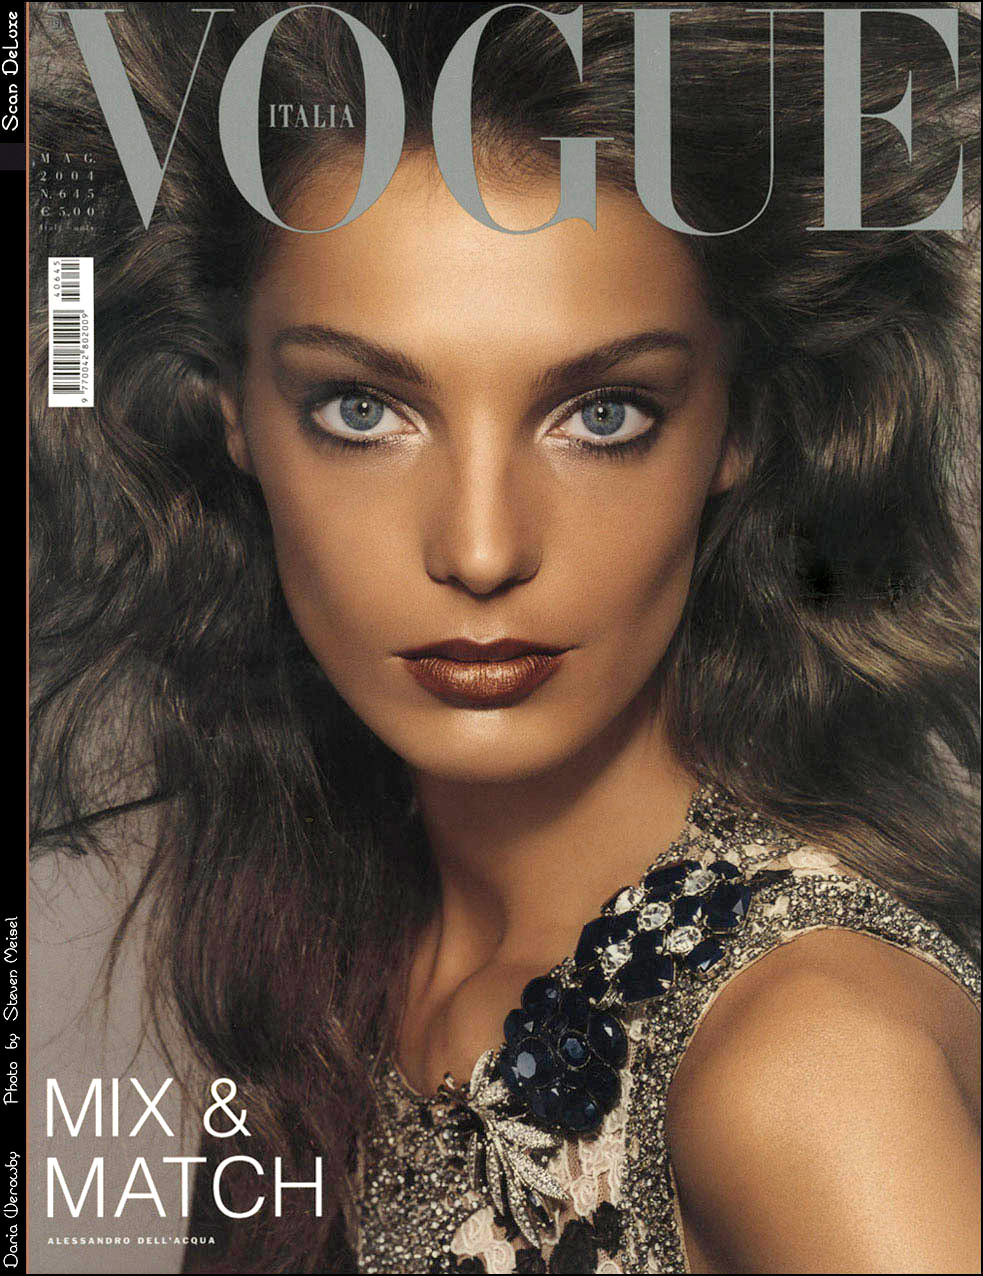 Daria Werbowy Italian Vogue Cover Photo by Steven Meisel May 2004